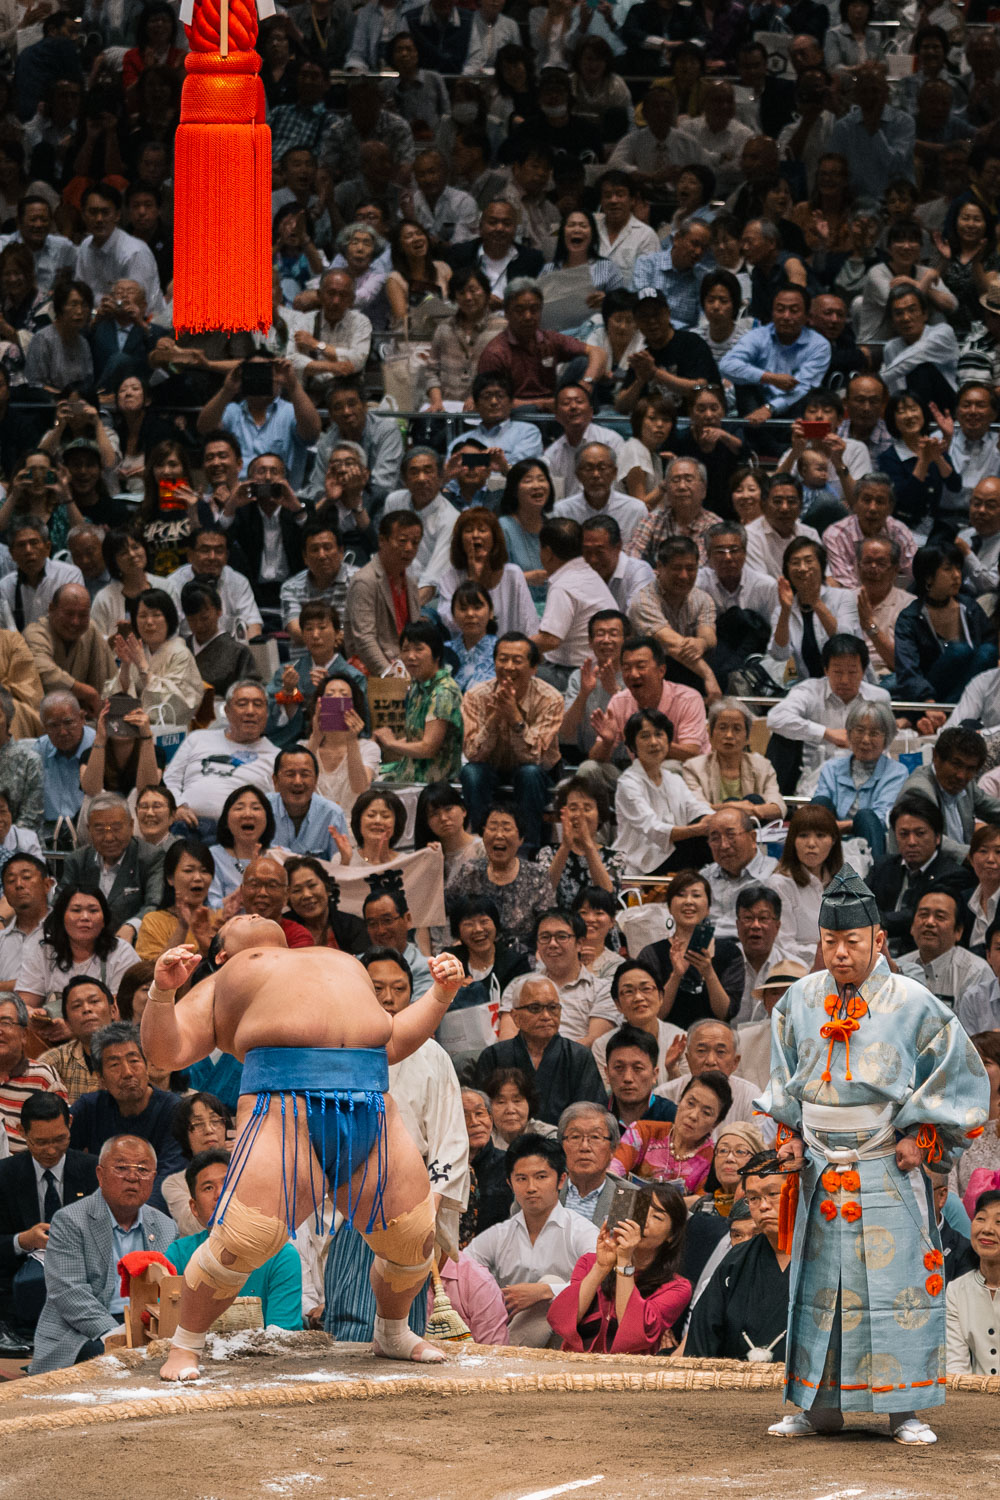 Japanese sumo wrestler Kisenosato Yutaka stretches before a match at Ryōgoku Sumo Hall in 2017 in Tokyo, Japan